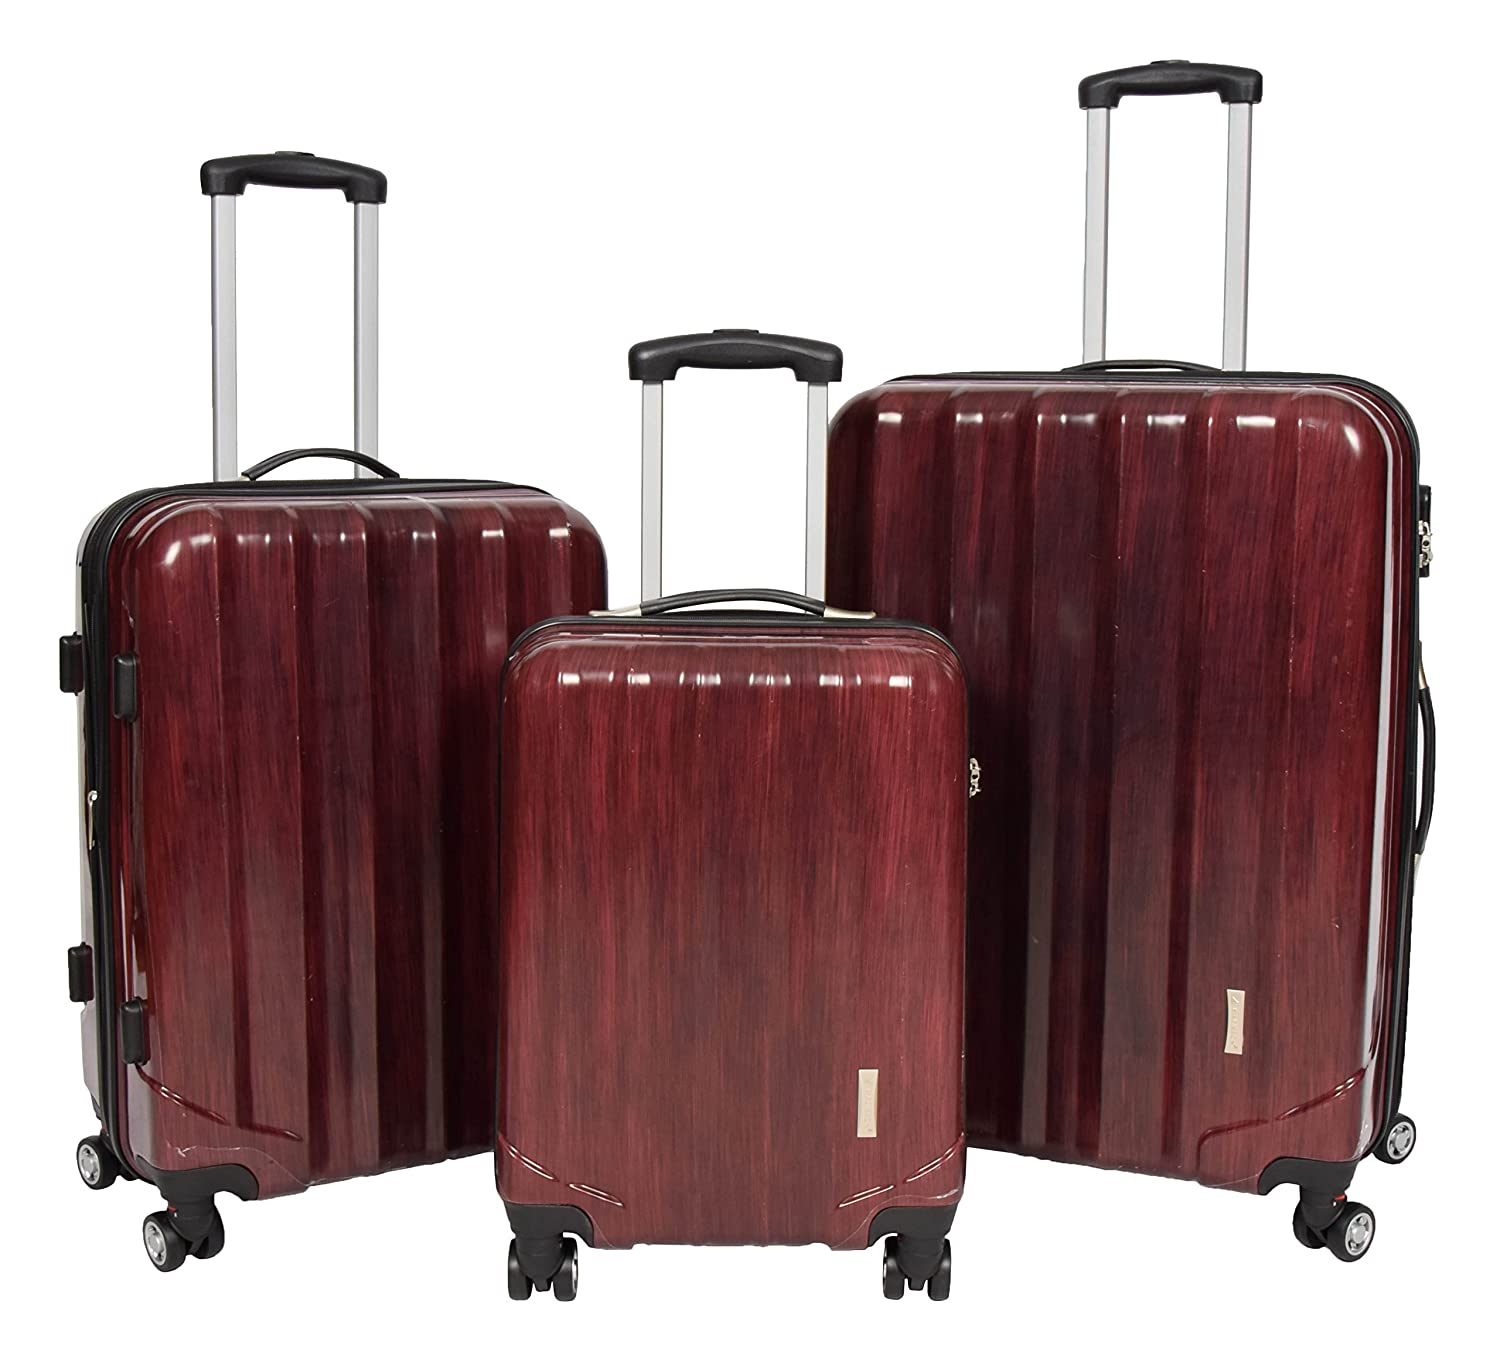 4 Wheel Luggage Suitcase Expandable Lightweight Trolley with Combination Lock Hard Shell Bag - Stone Red (Full Set 3 Pcs)